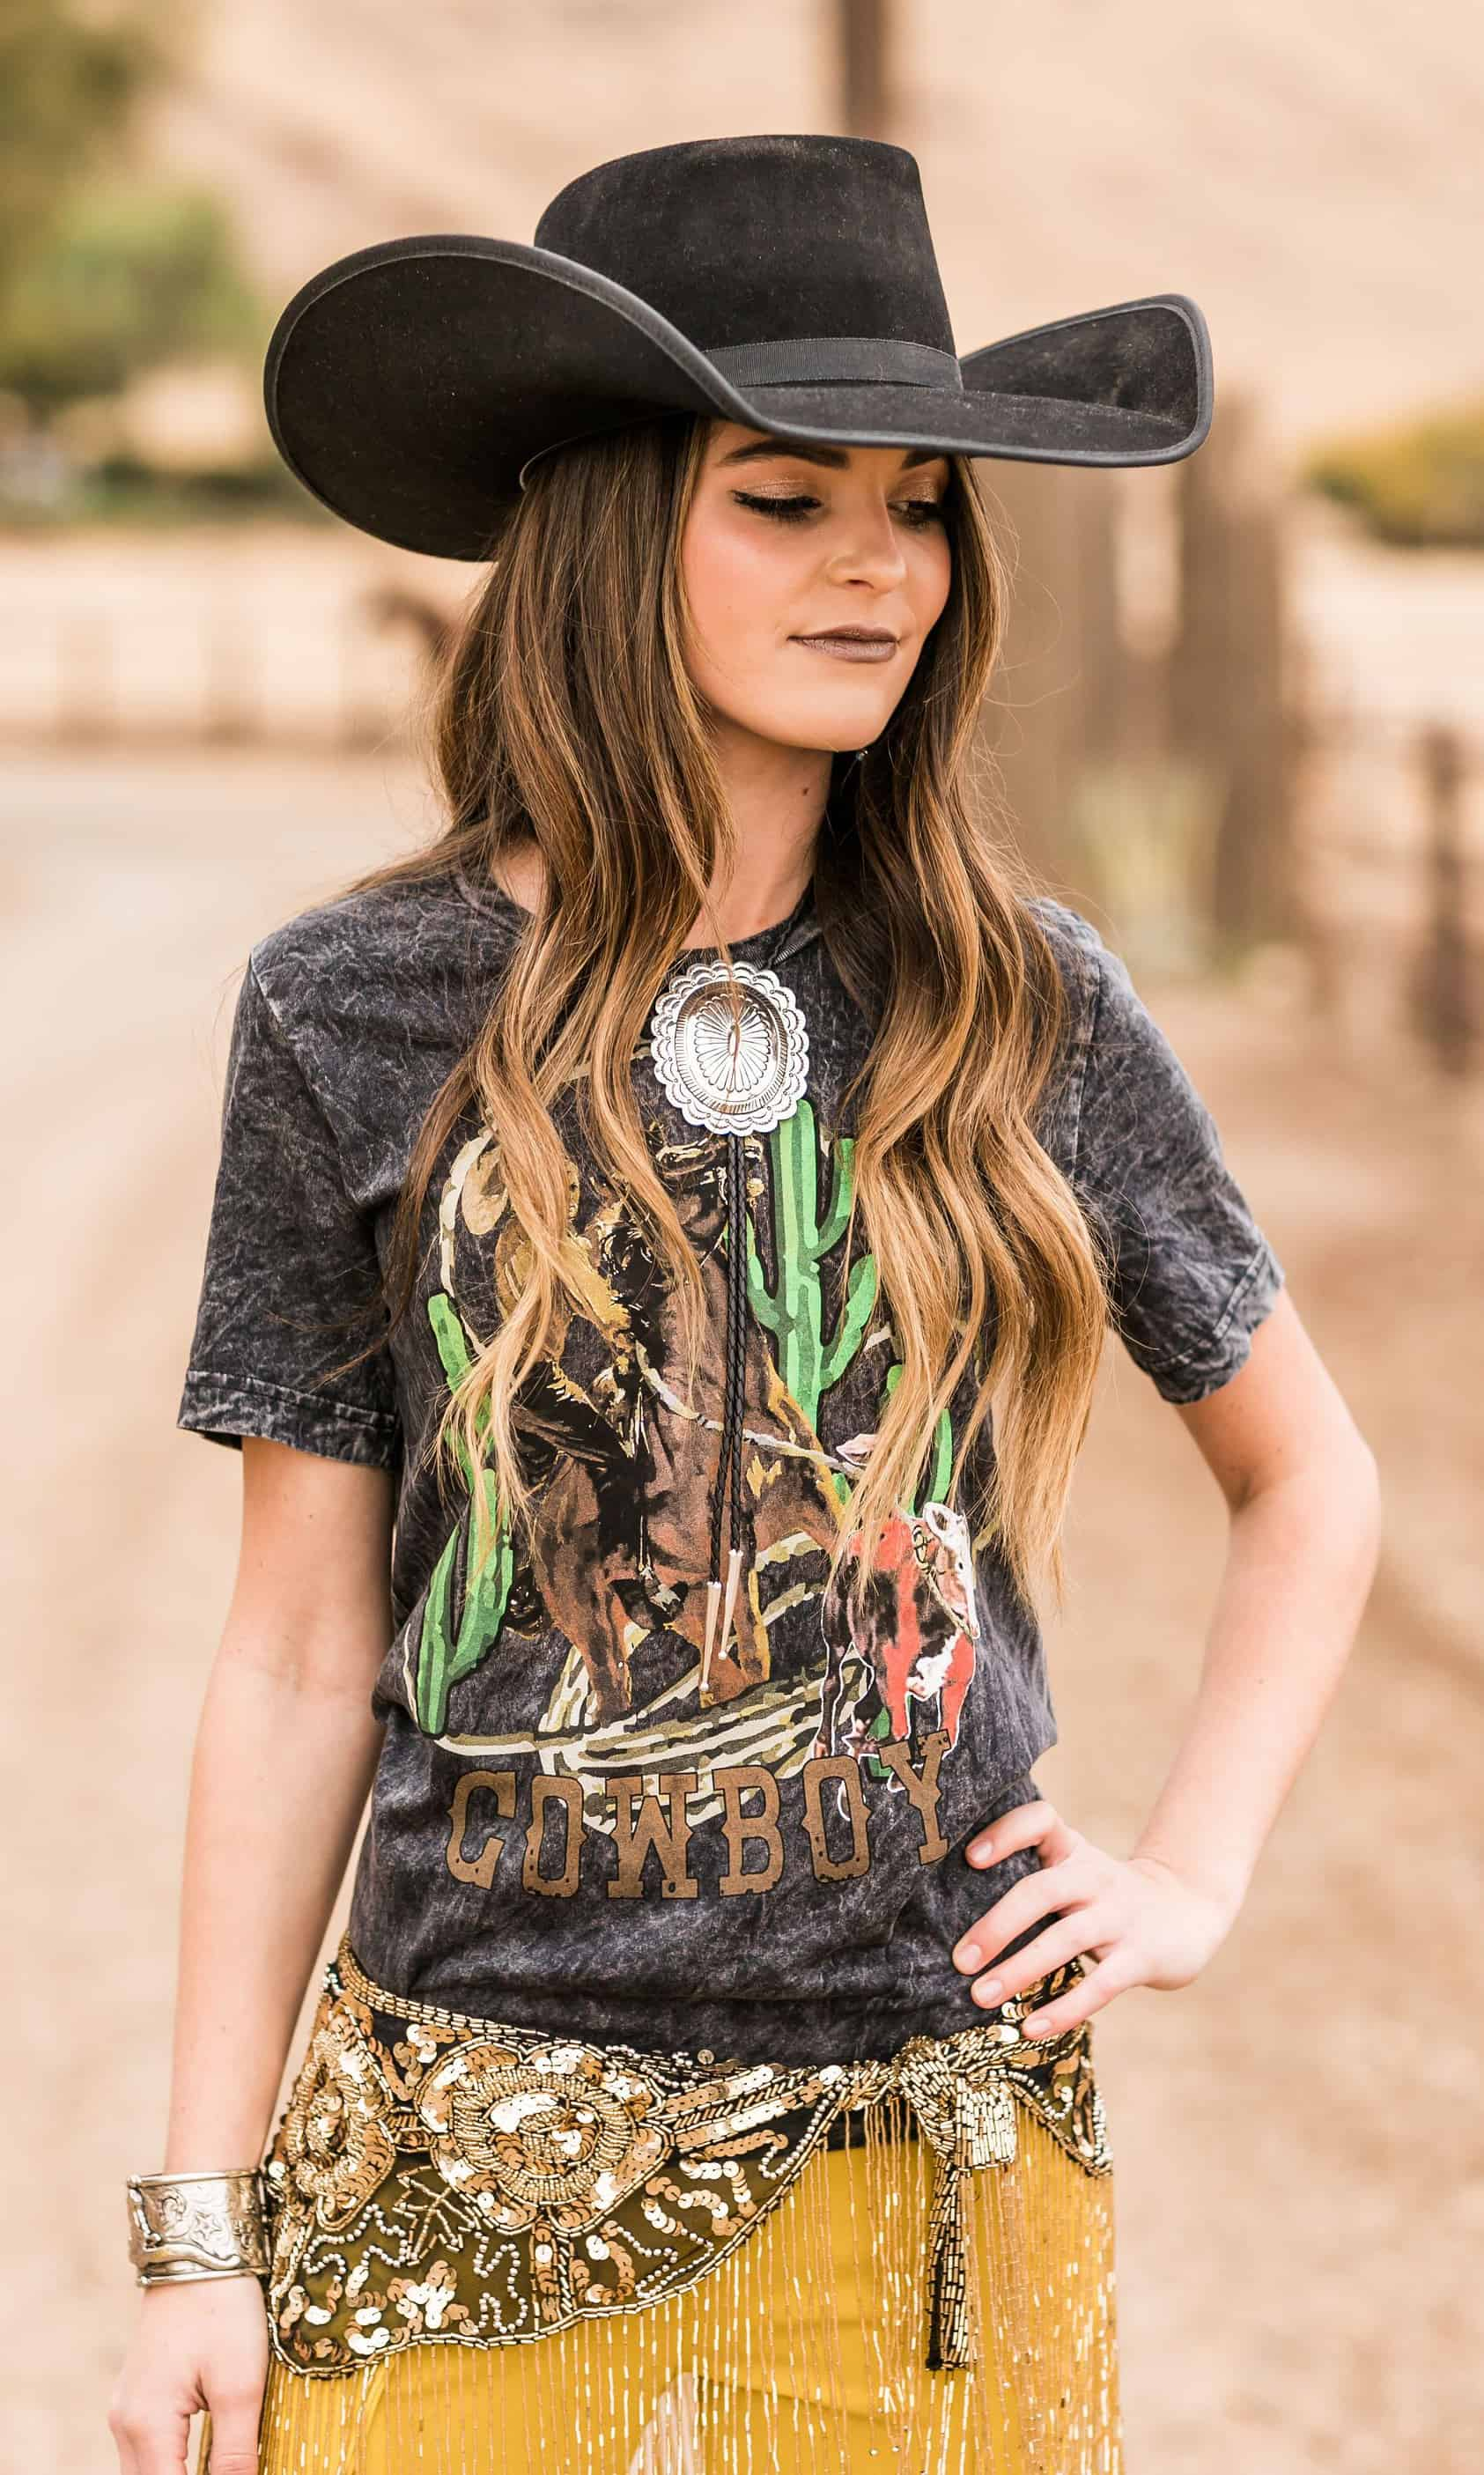 rodeo quincy graphic tee cowgirl magazine